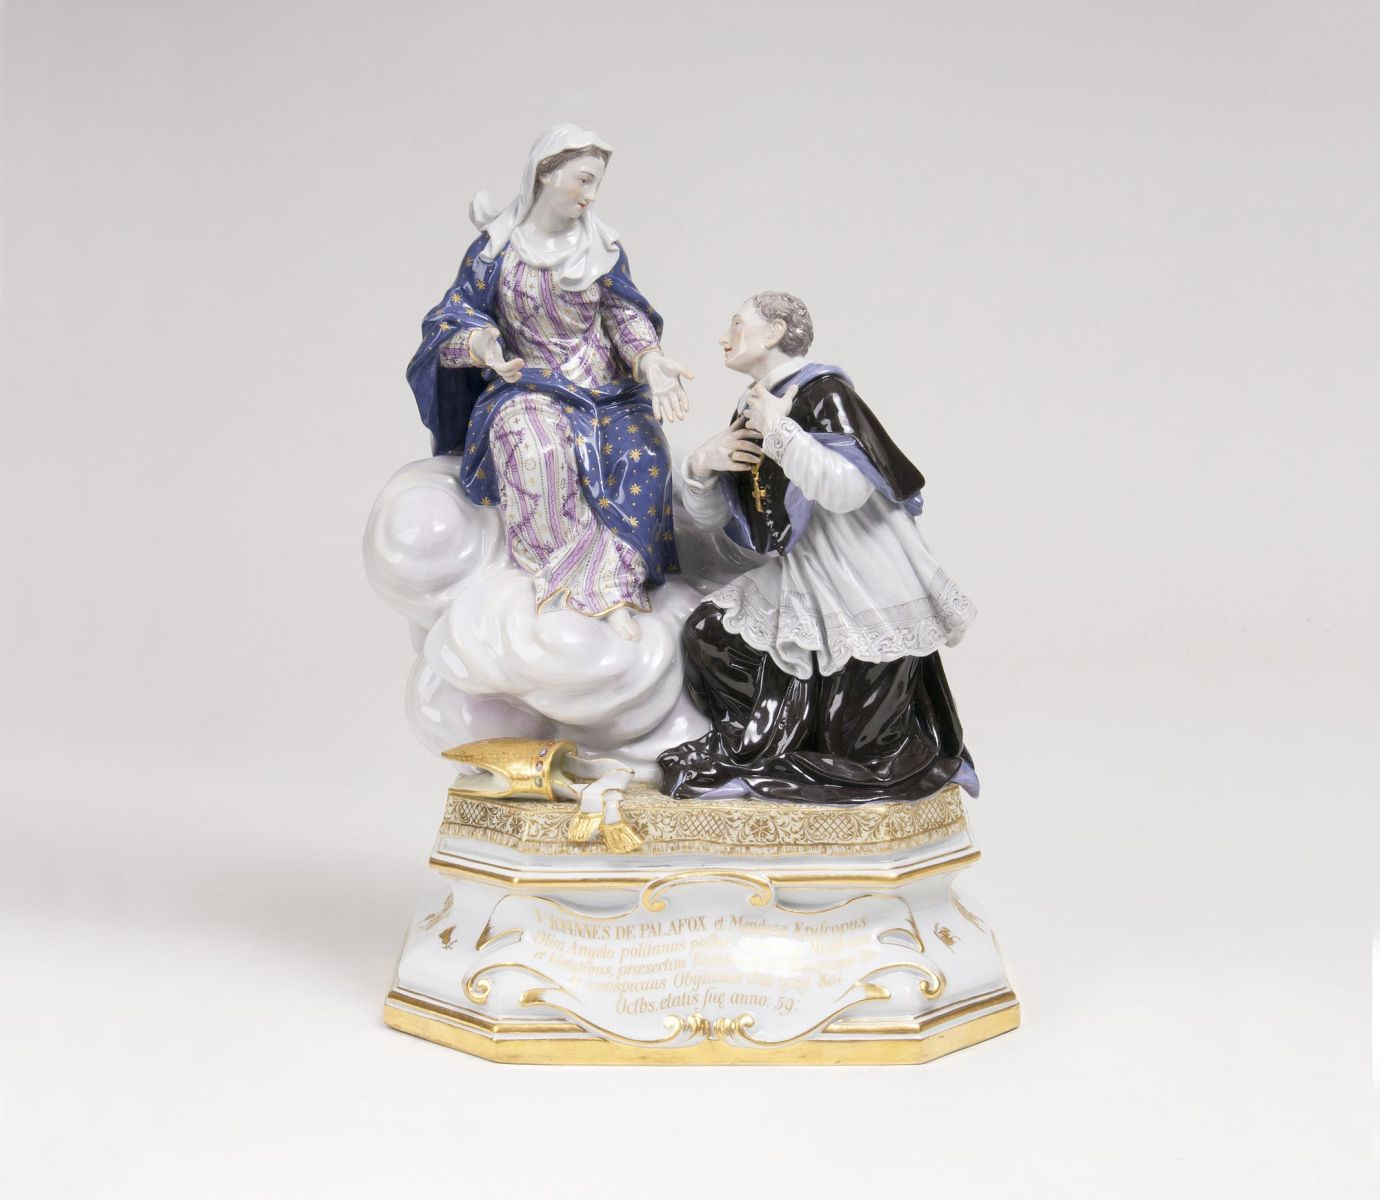 A rare Figure Group 'The Virgin Mary Appearing to John Palafox'